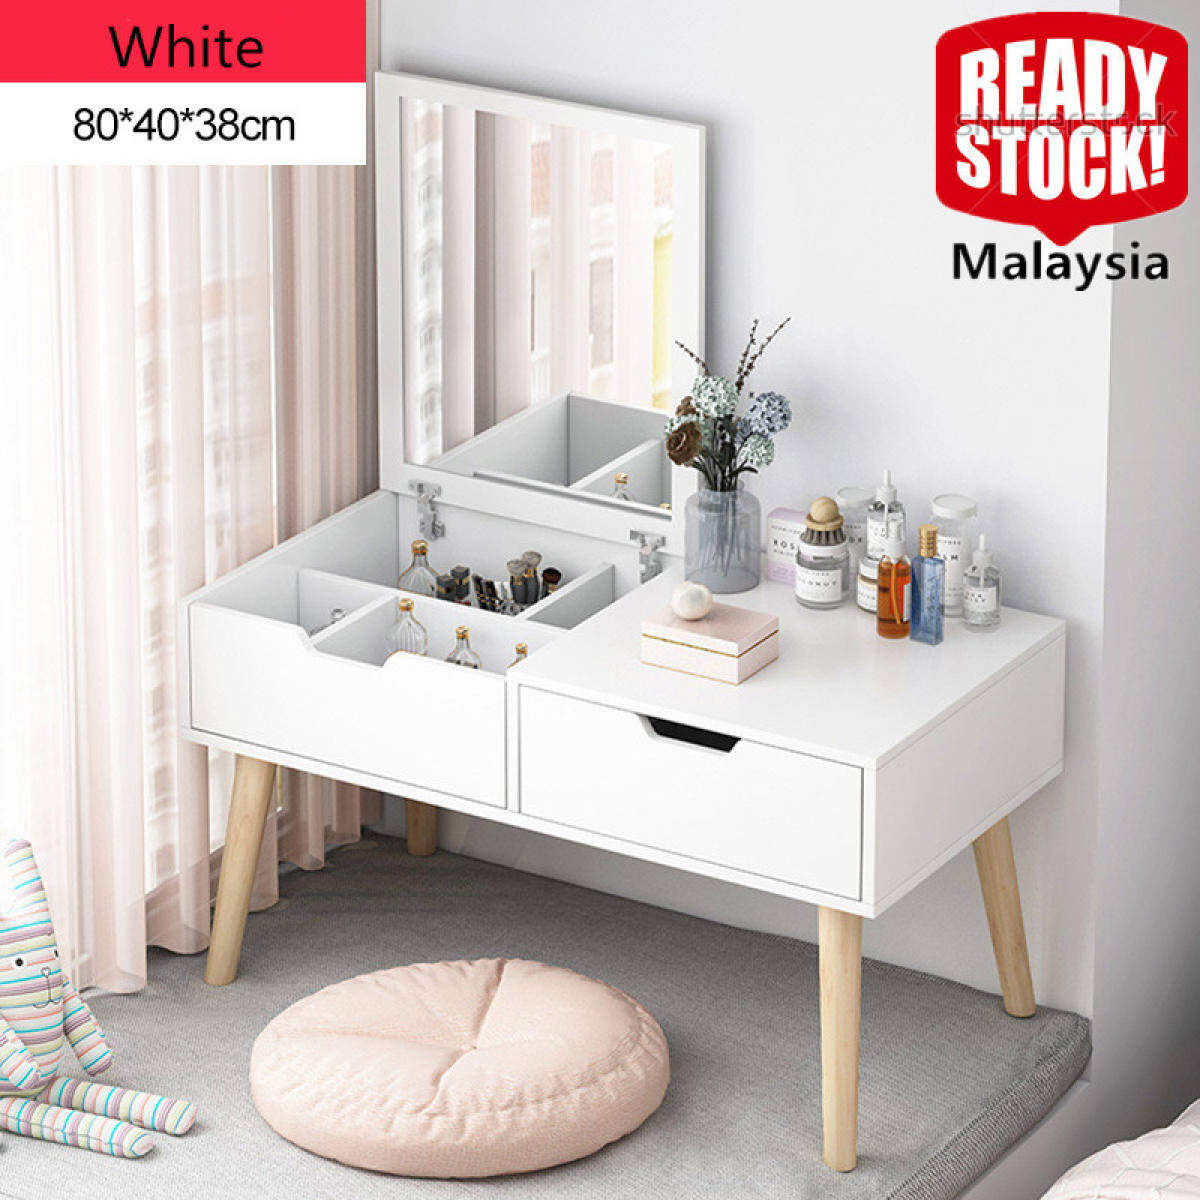 Dressers For Bedroom Dressing Table With Mirror And Makeup Vanity Cabinet Makeup Organizer Chest Drawers Lazada